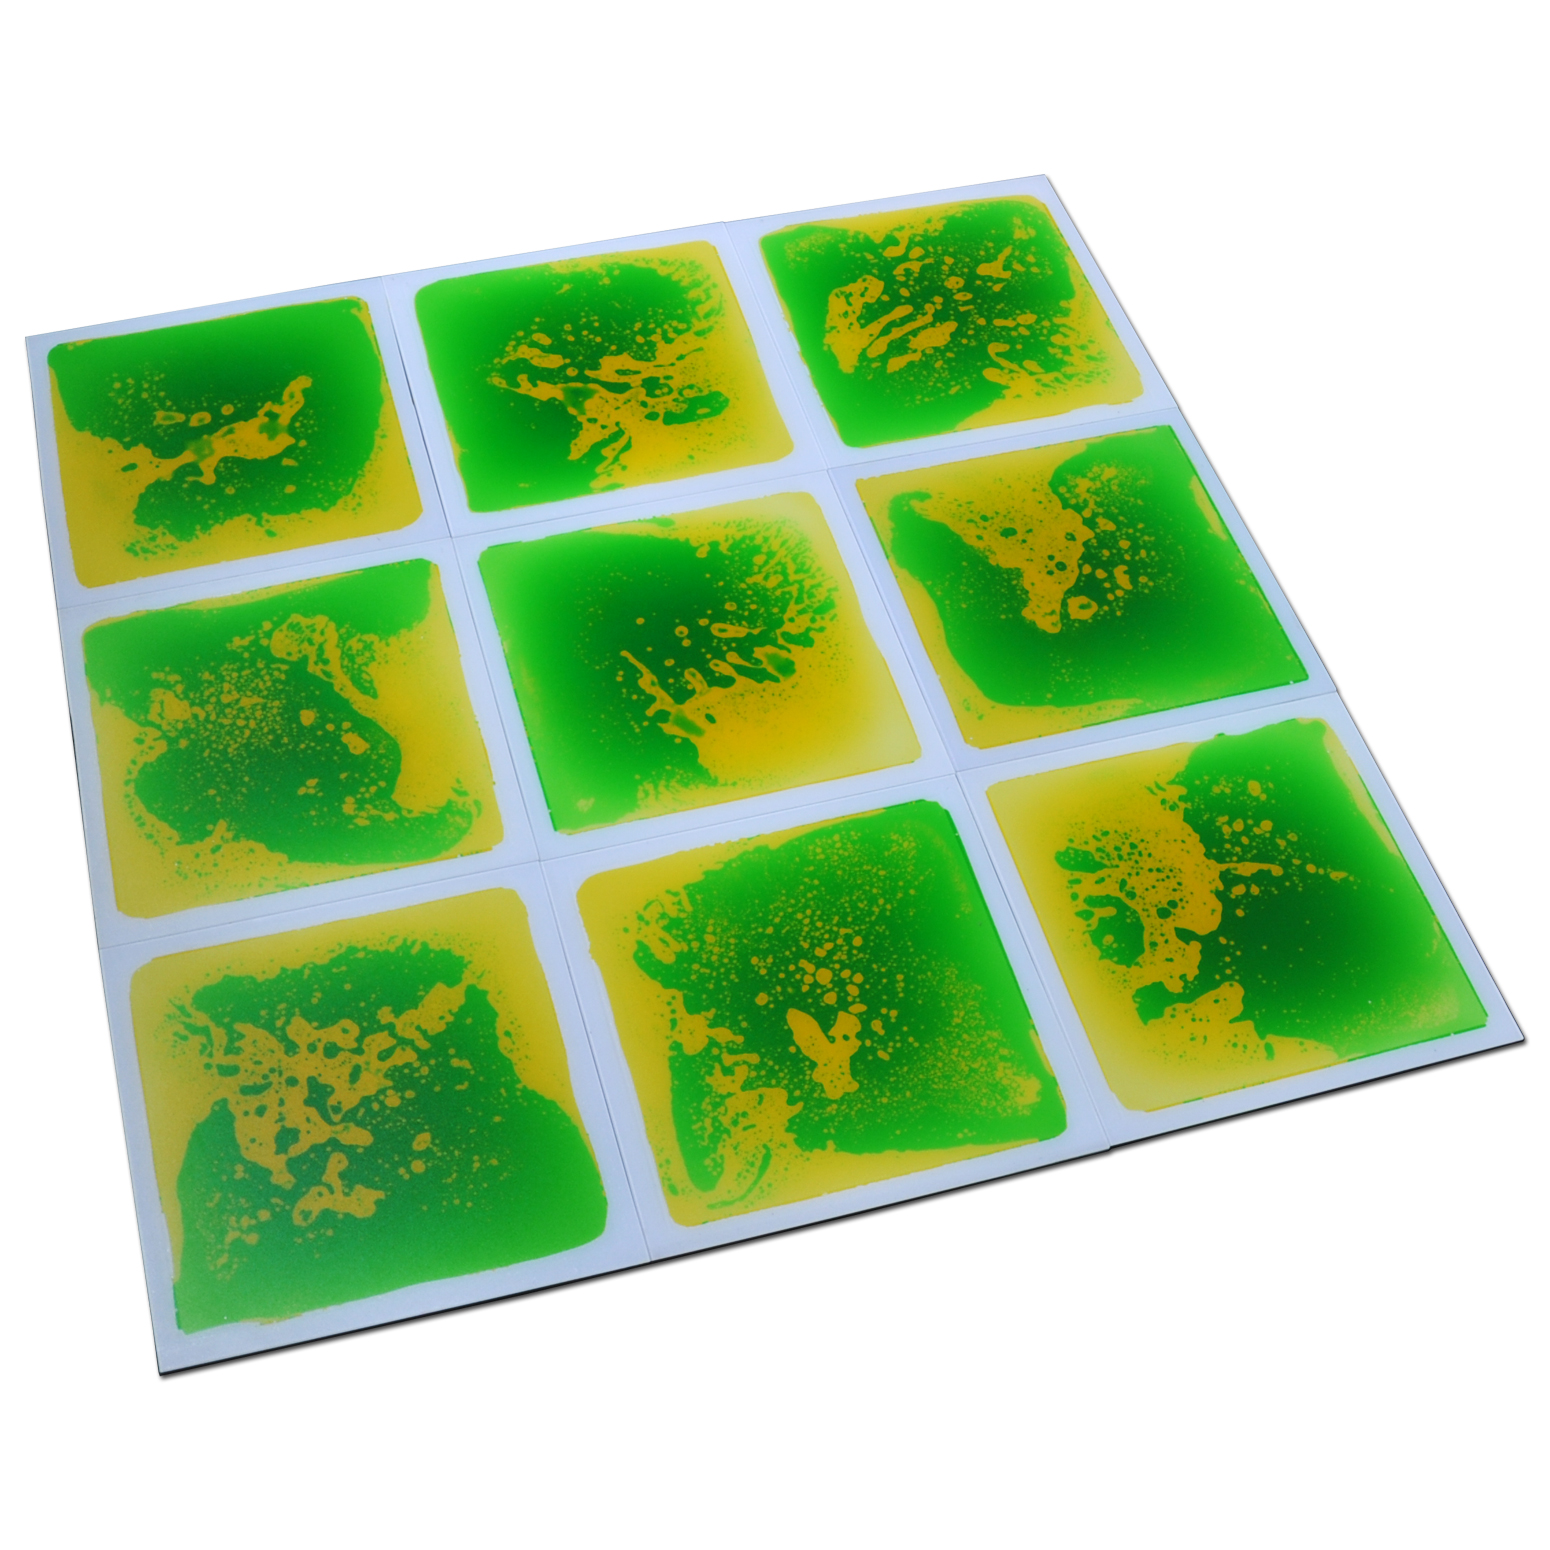 "Art3d Kids Play Mat Fancy Floor Tile For Kids Room Liquid Encased Floor Tile, 12"" X 12"" Blue"